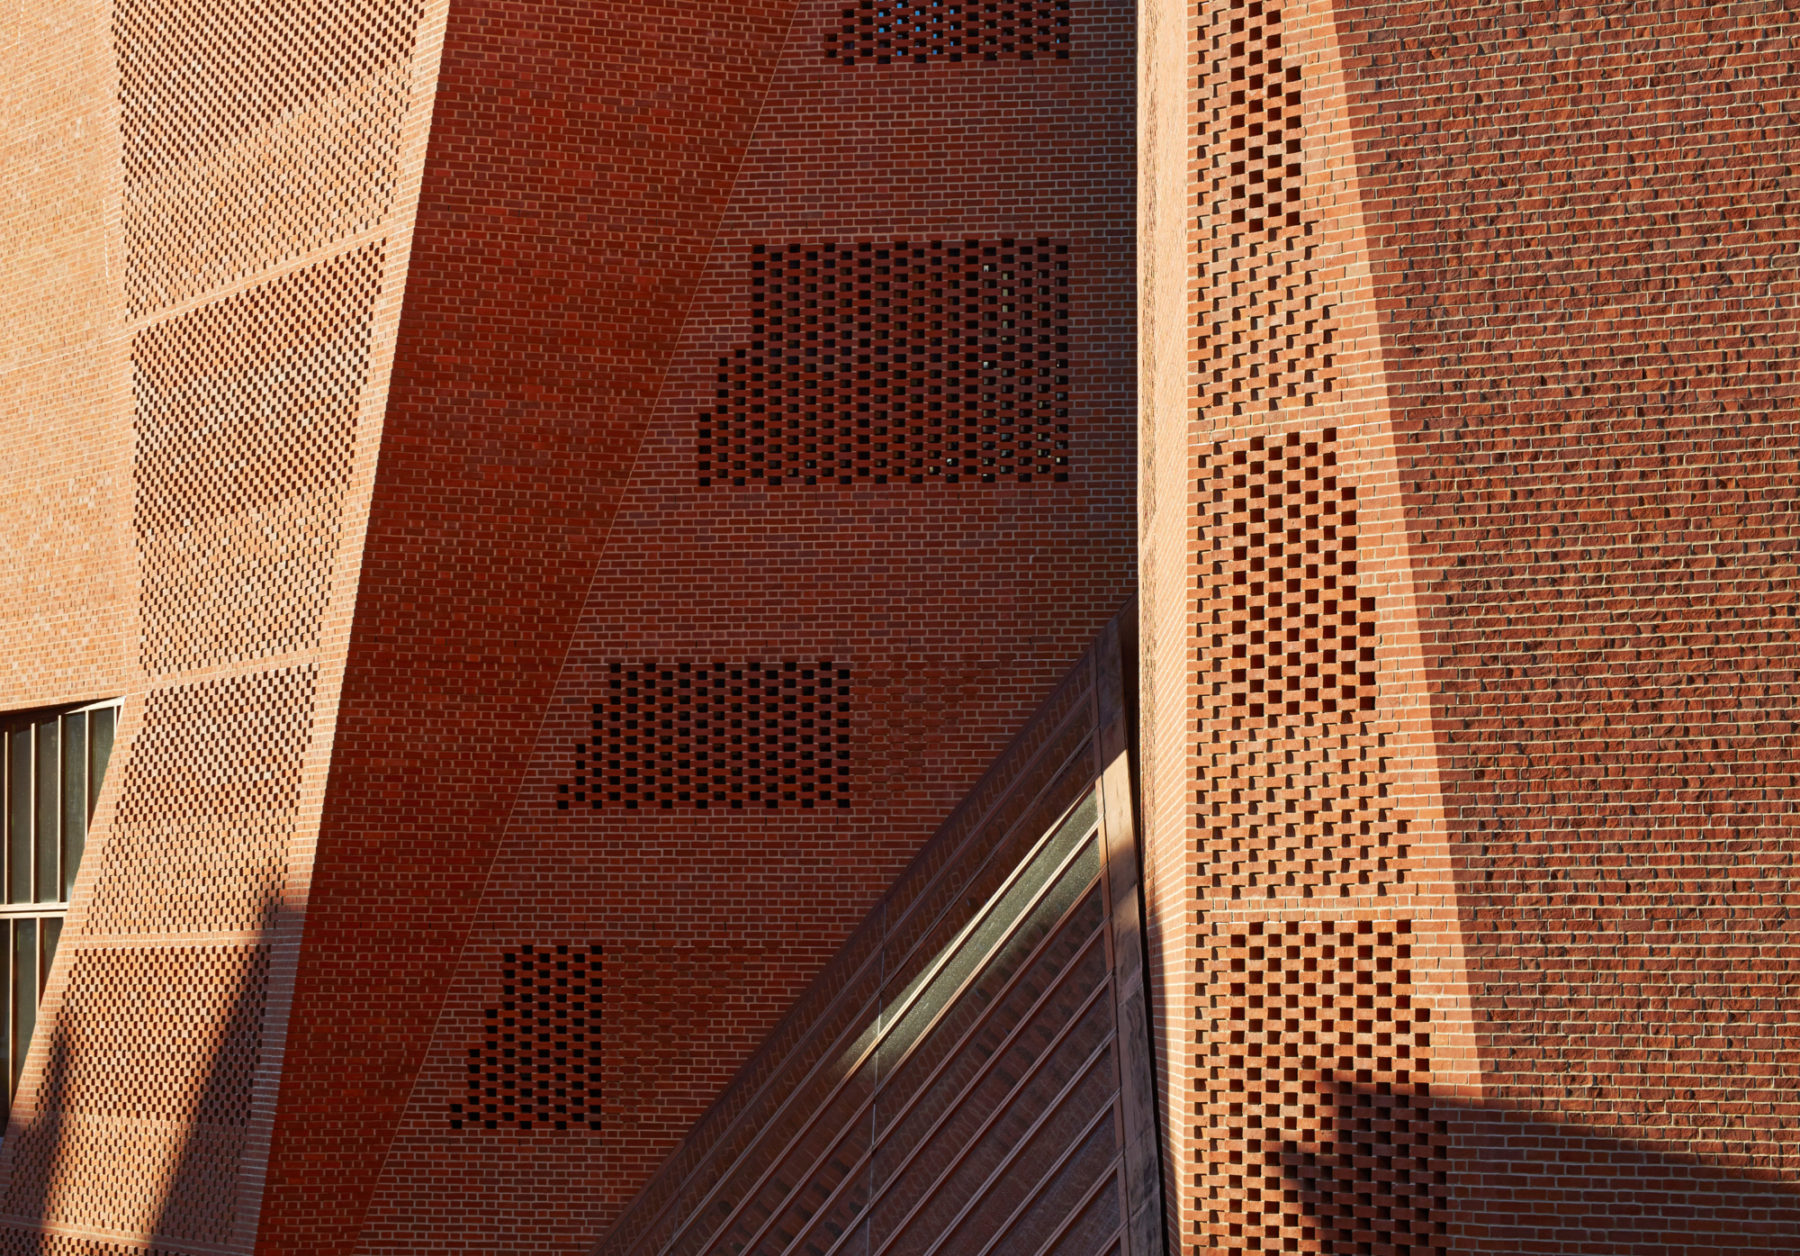 LSE Saw Swee Hock Student Centre — O'Donnell + Tuomey